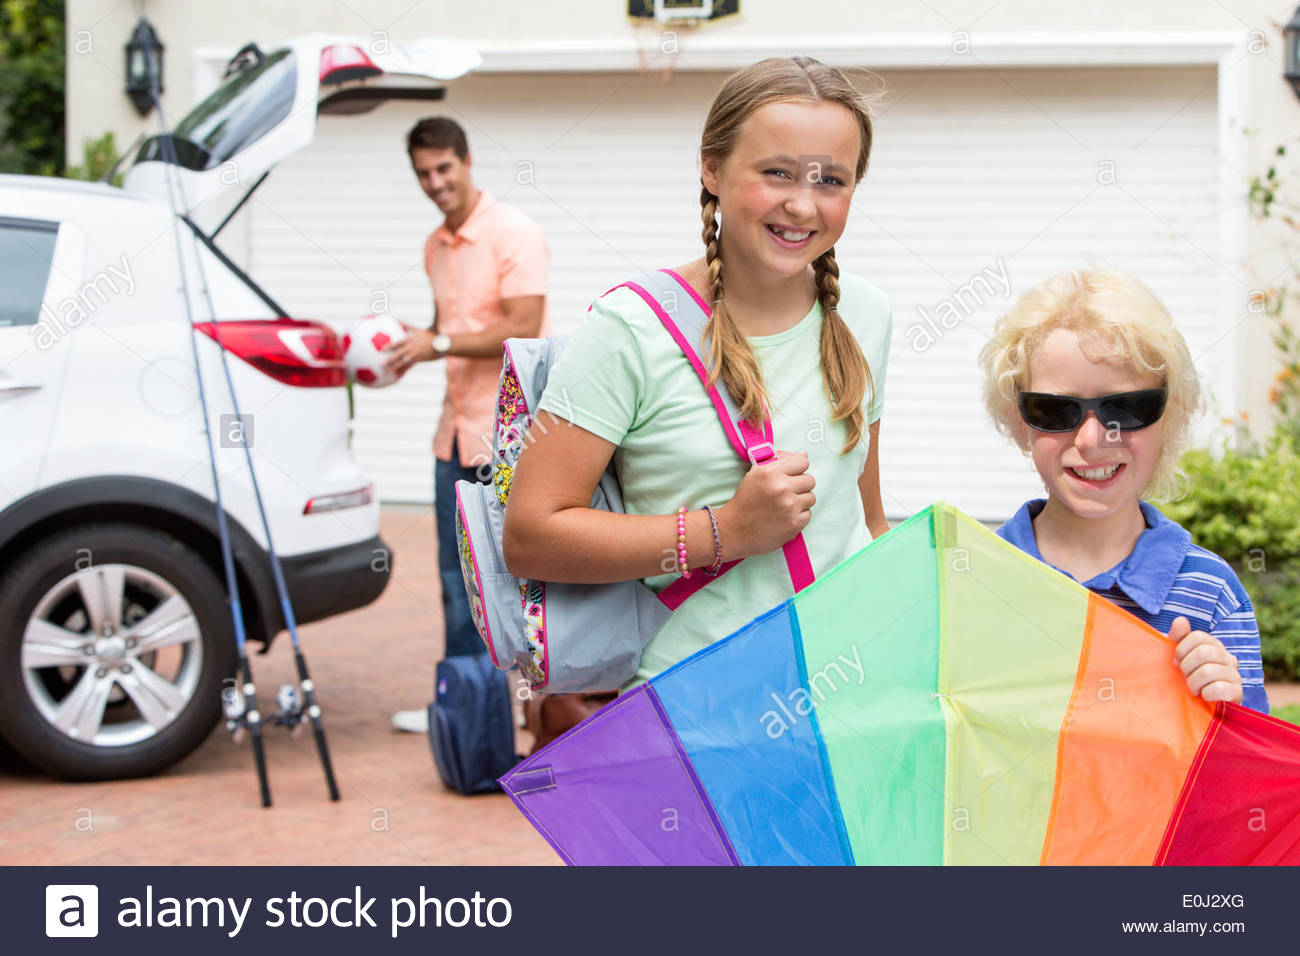 Portrait of brother and sister with multicolor kite in driveway - Stock Image